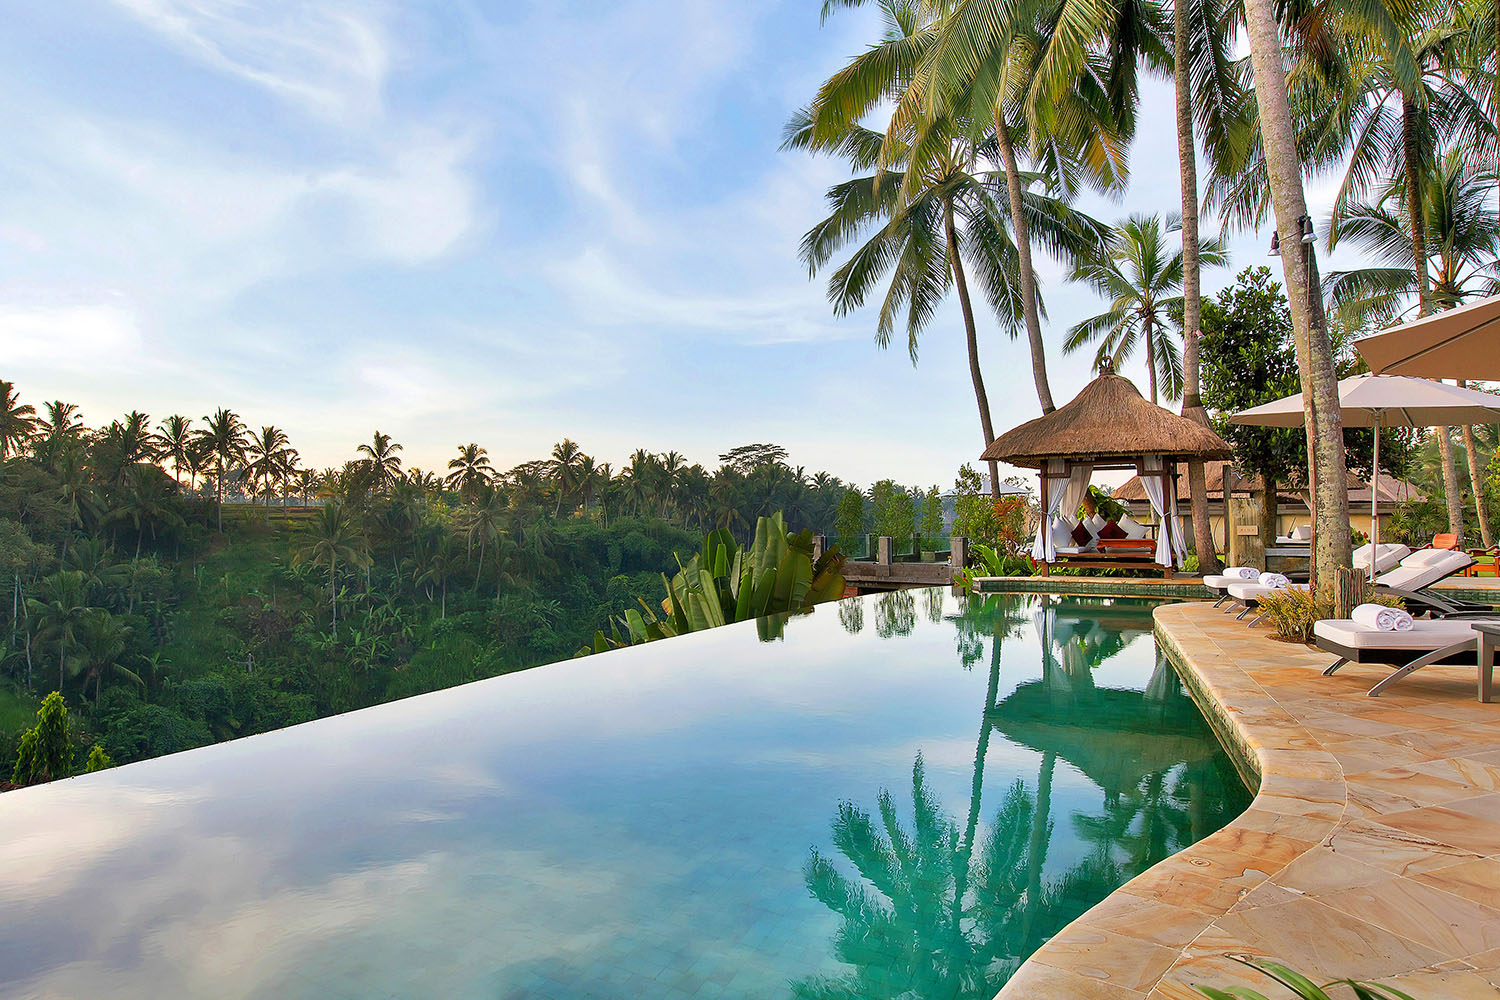 Viceroy bali review hotels accommodation luxury for Great hotels in bali